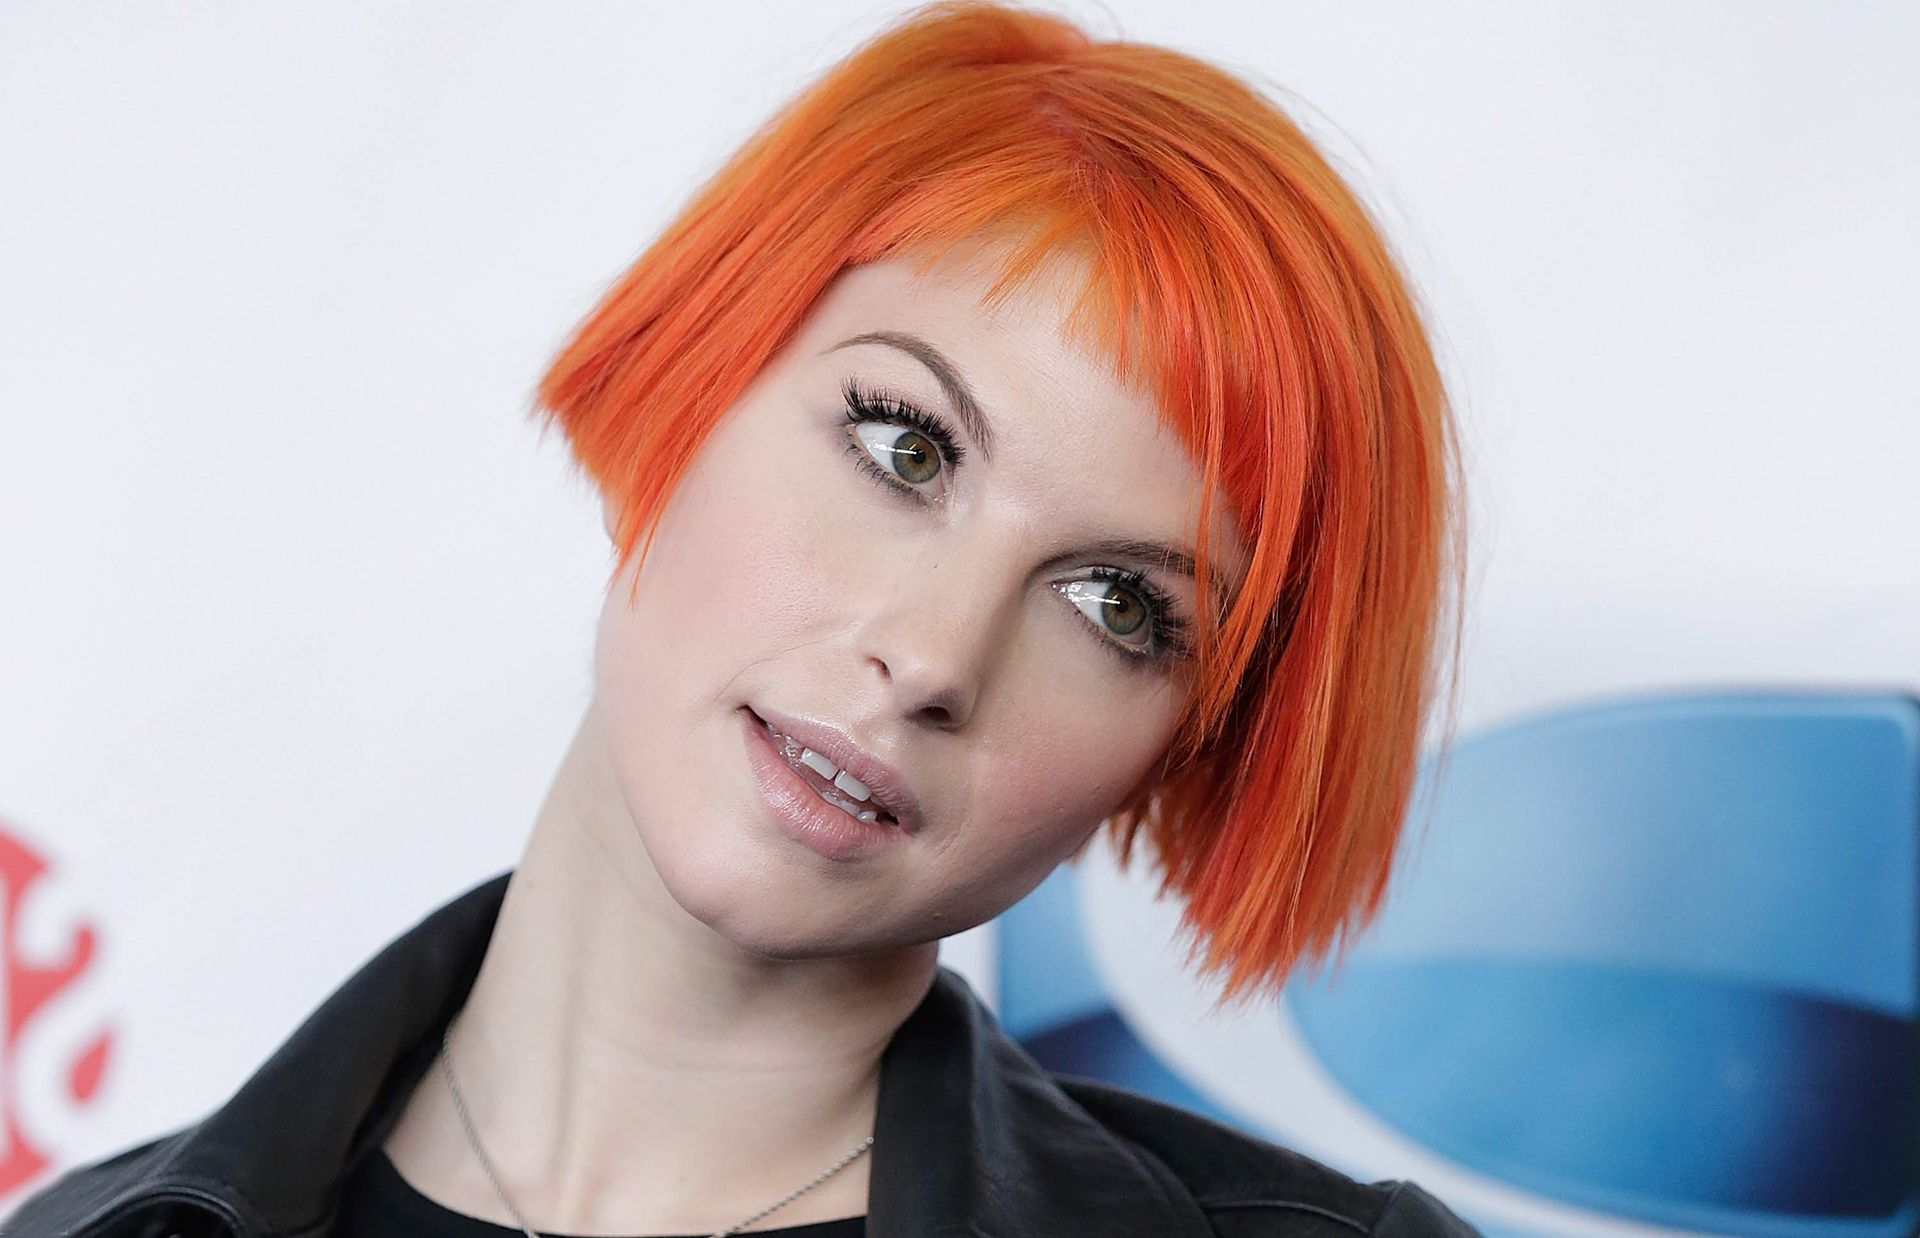 hayley_williams_1